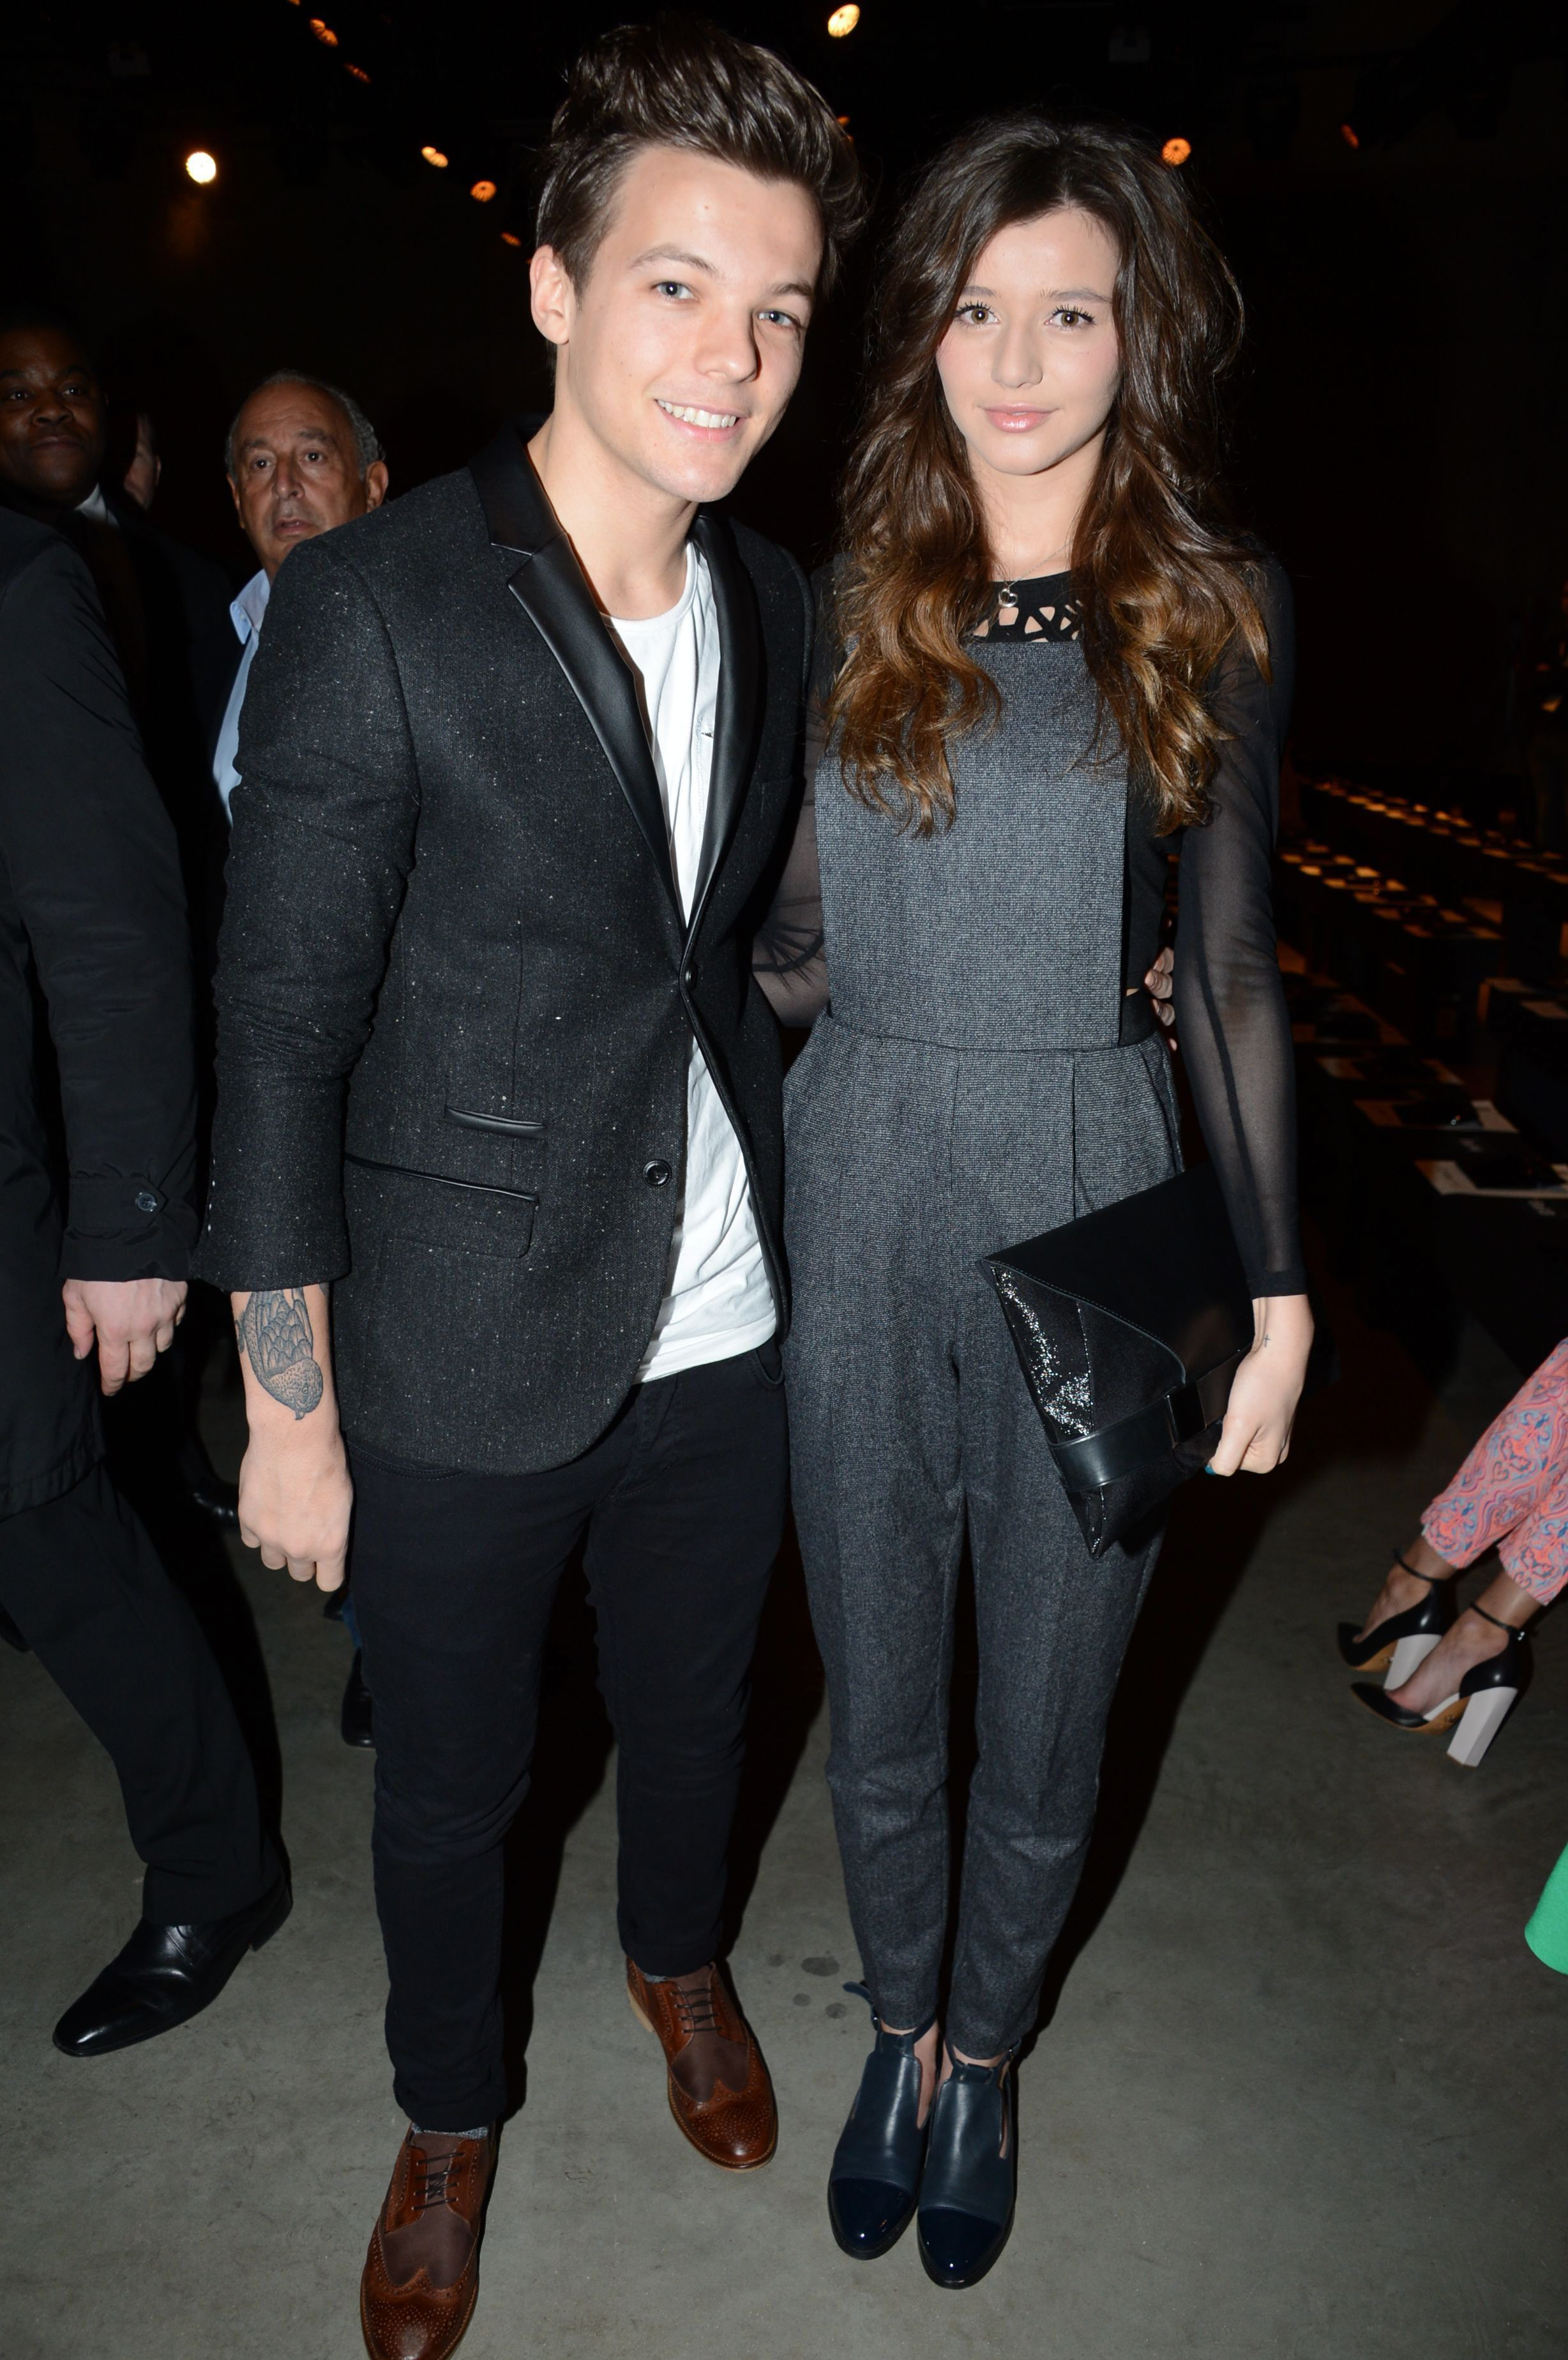 One Directions Louis Tomlinson Splits From Girlfriend